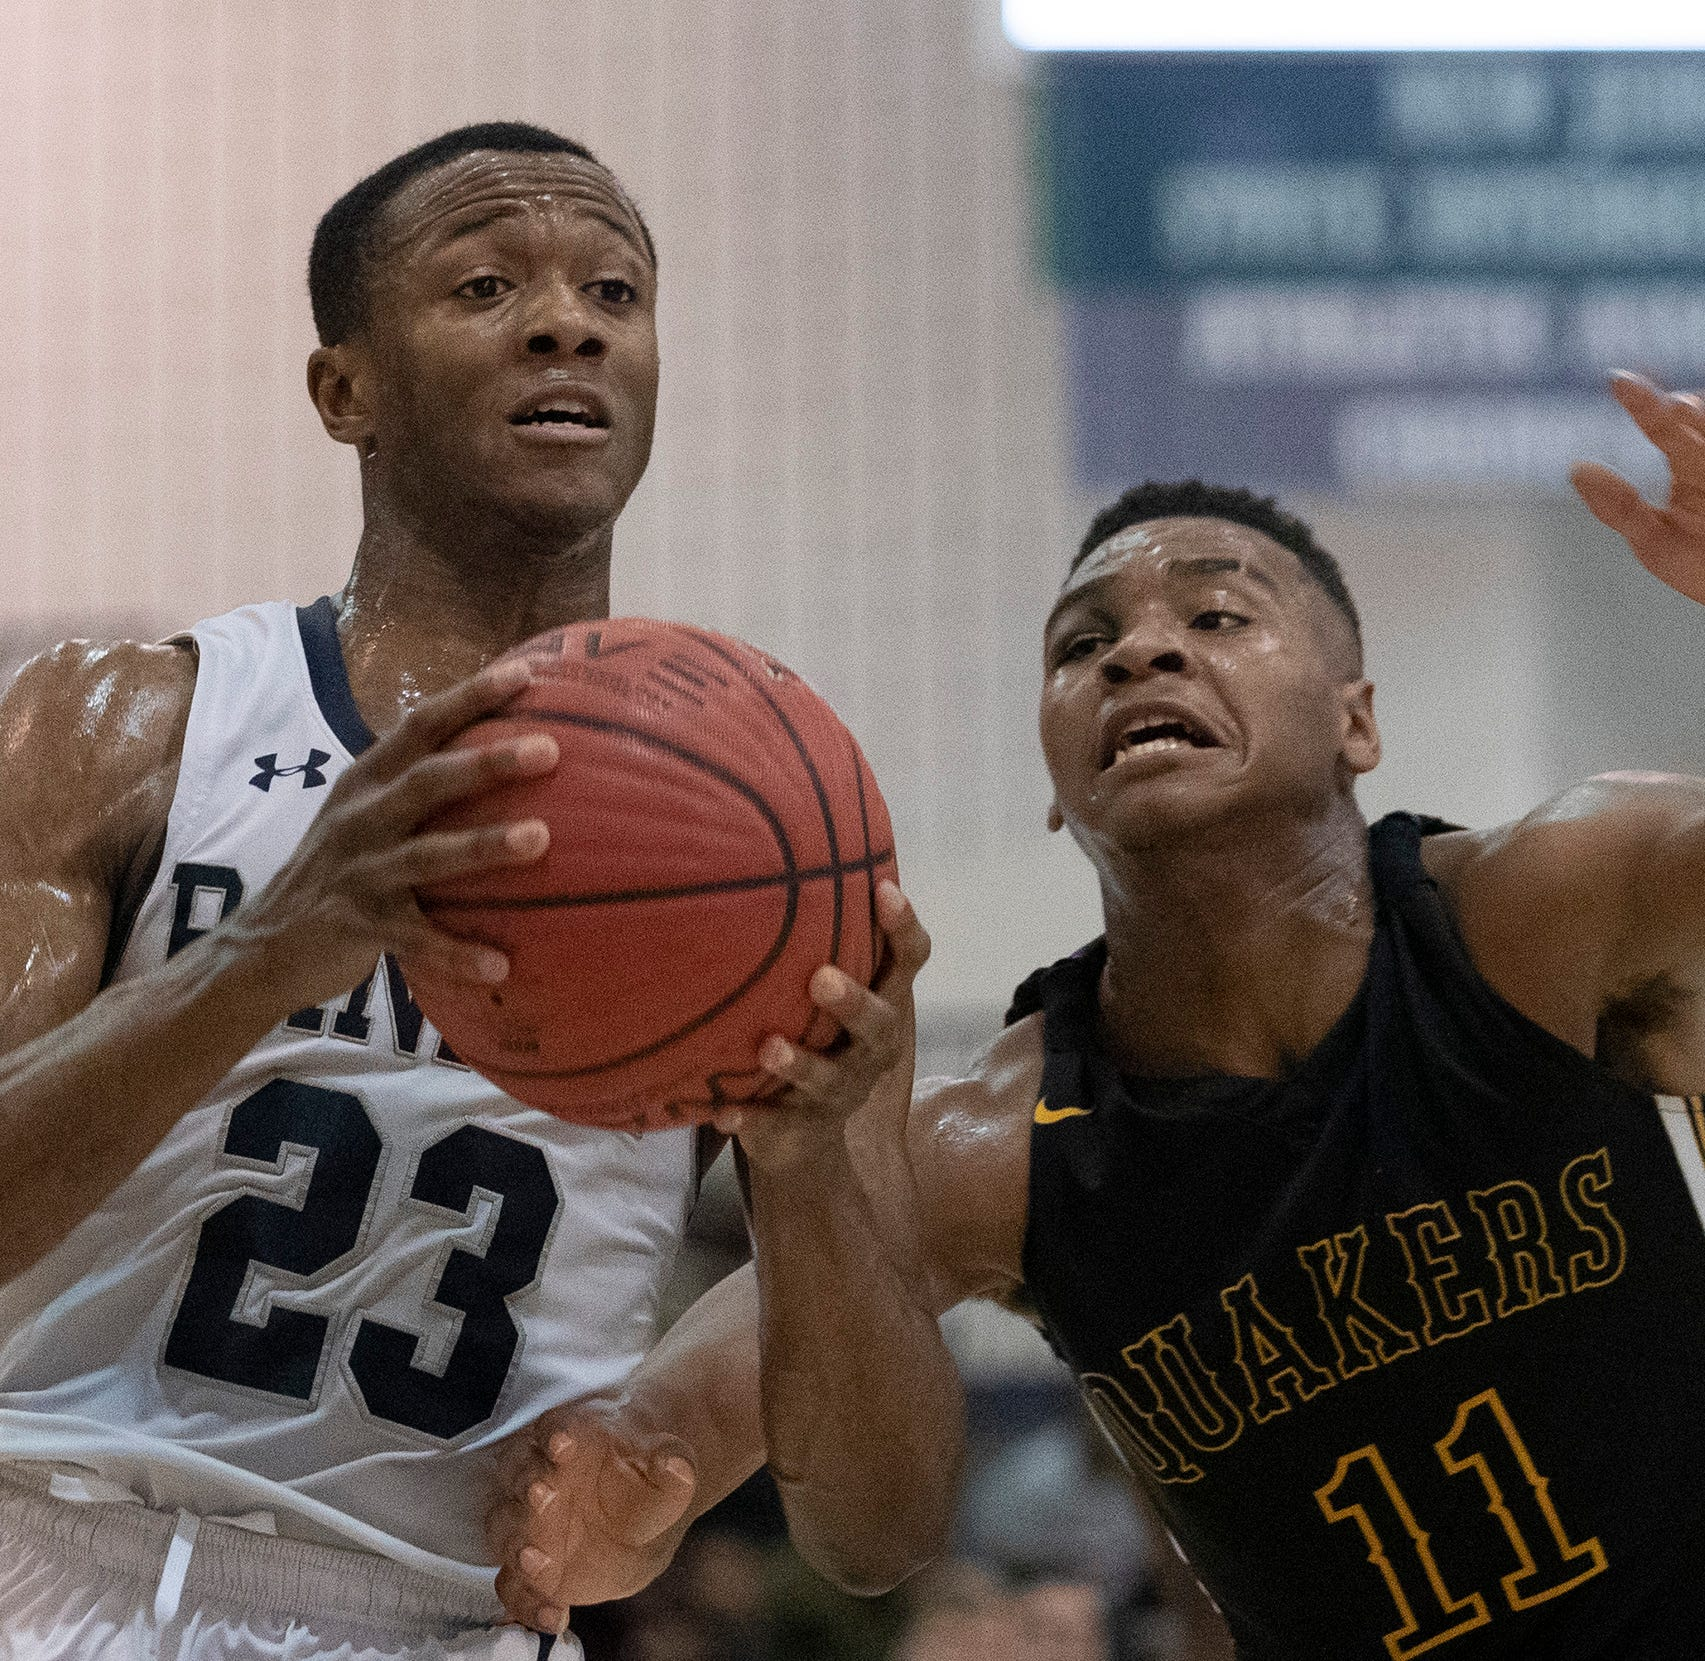 Tournament of Champions: Moorestown's magical season comes to an end against No. 1 Ranney